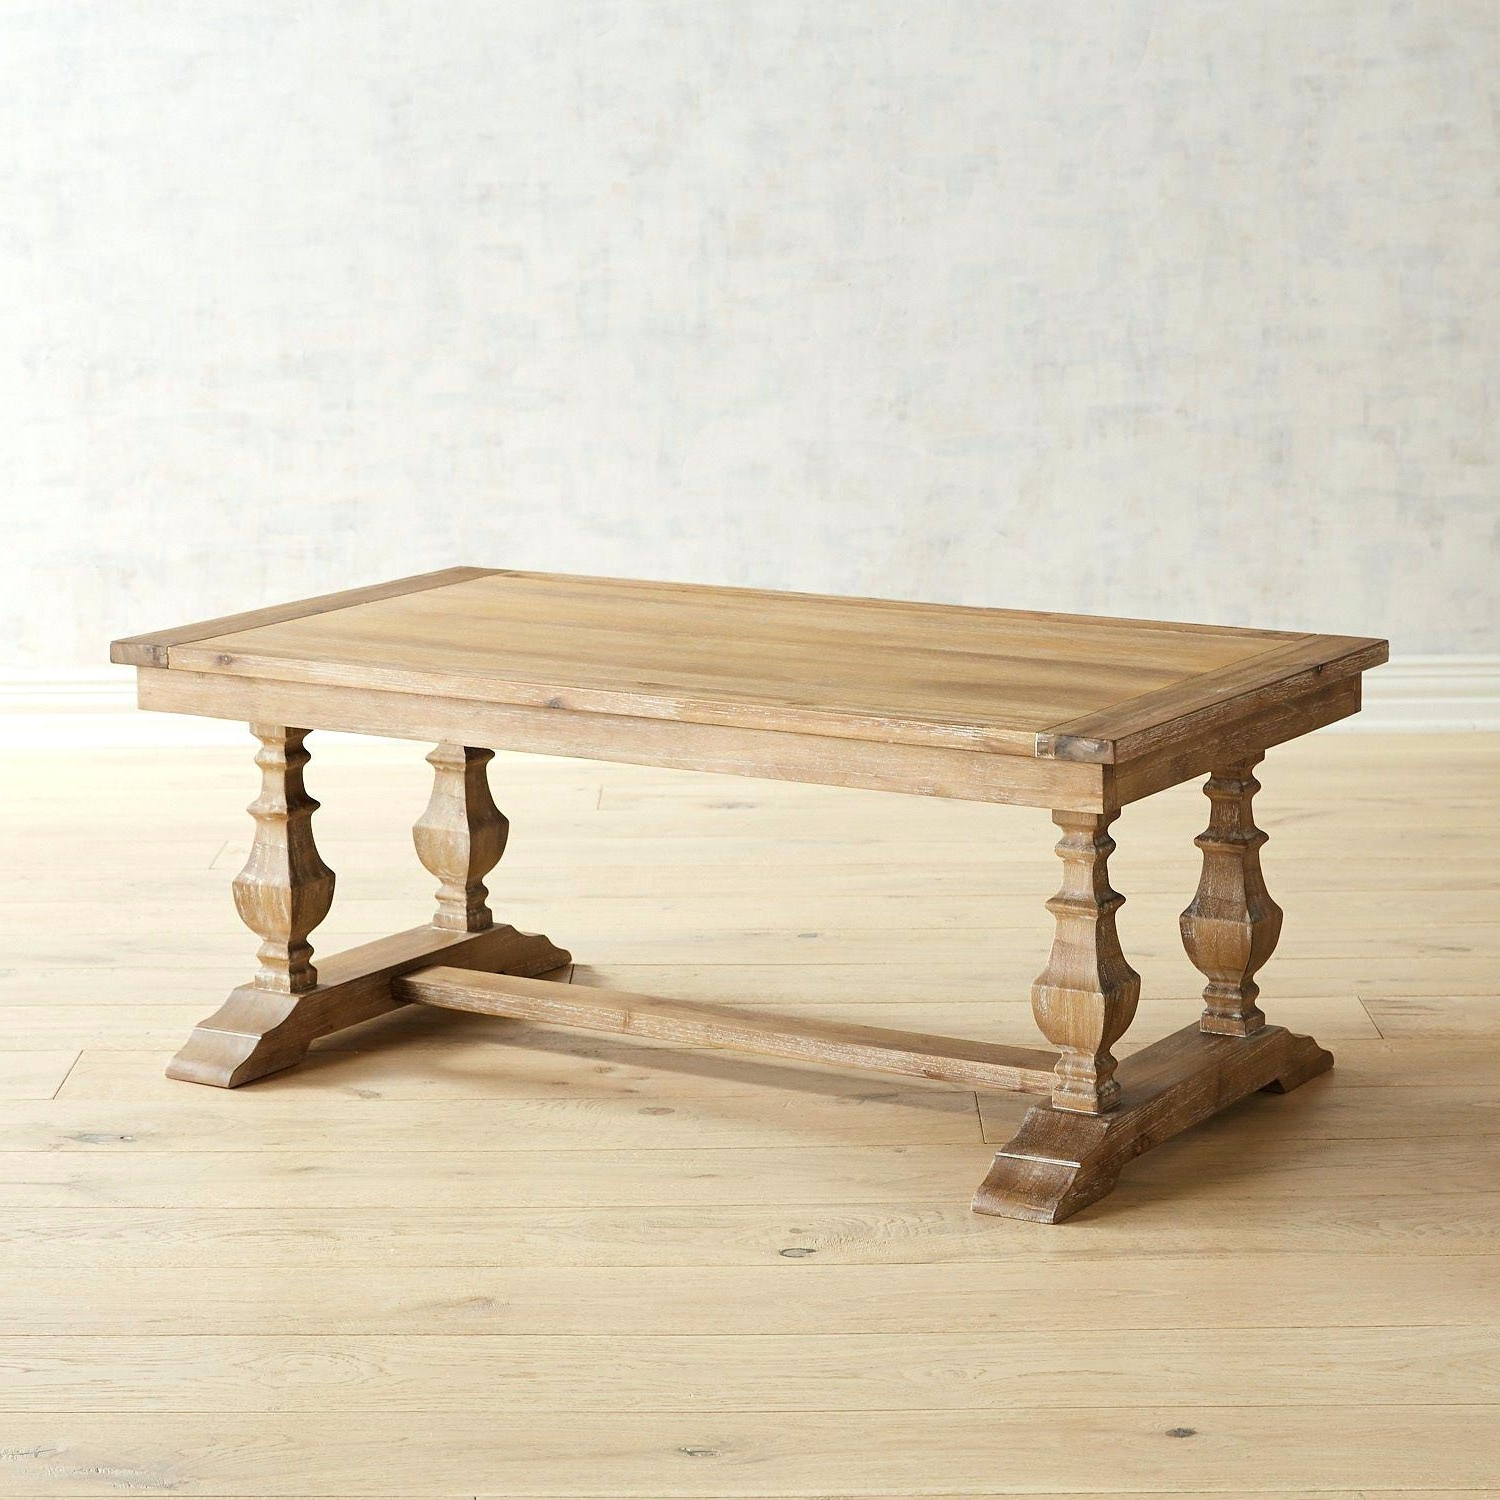 Natural Coffee Table Pier 1 Imports For Natural Coffee Table Plans Throughout Most Up To Date Light Natural Coffee Tables (Gallery 20 of 20)